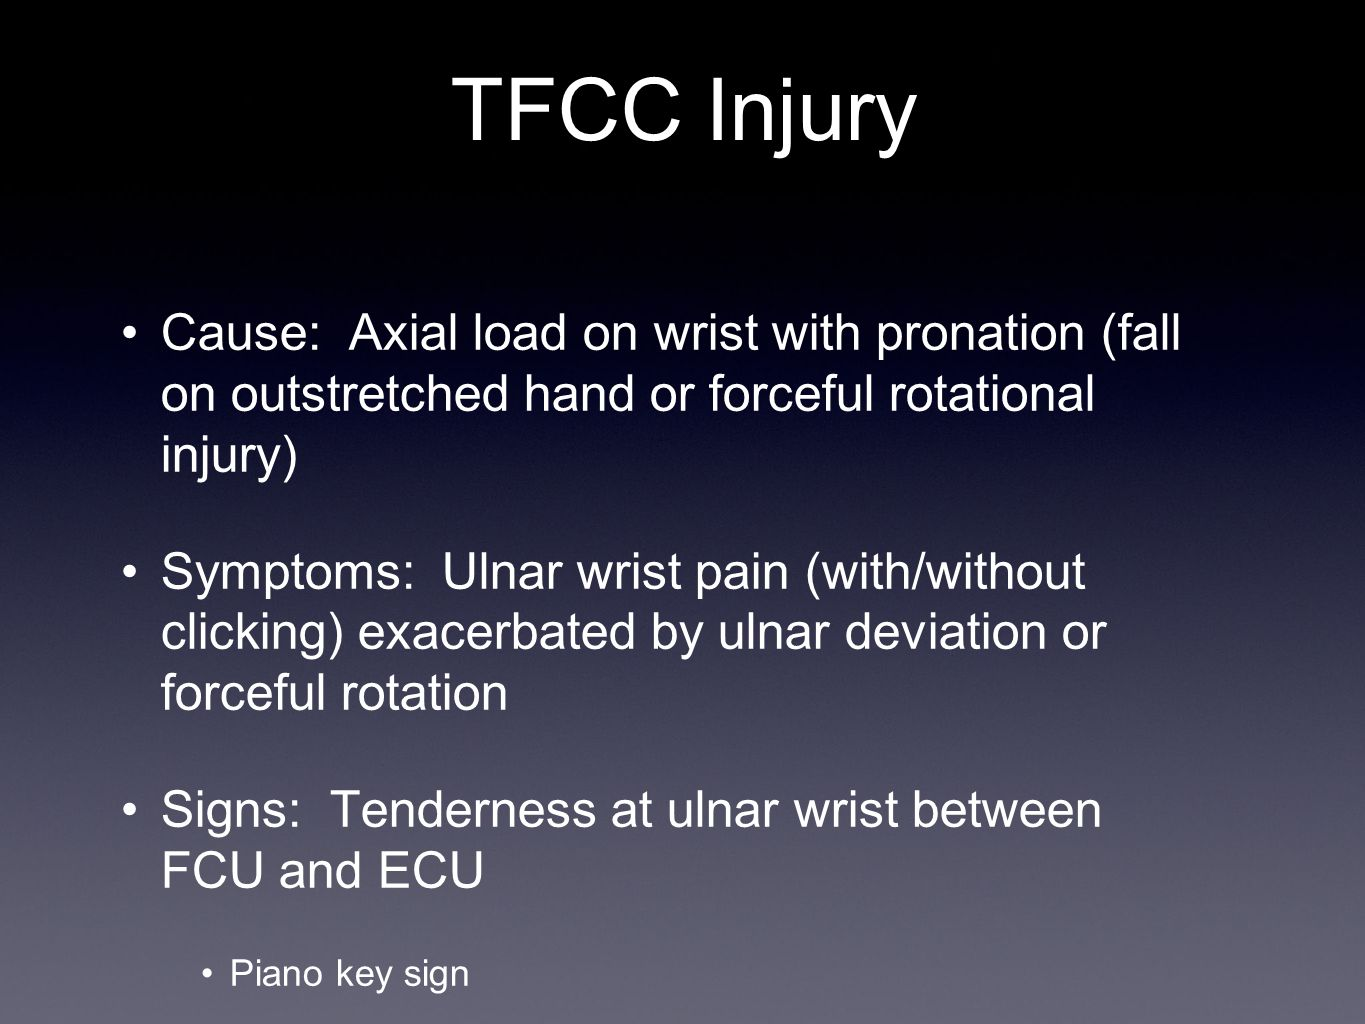 TFCC Injury Cause: Axial load on wrist with pronation (fall on outstretched hand or forceful rotational injury)